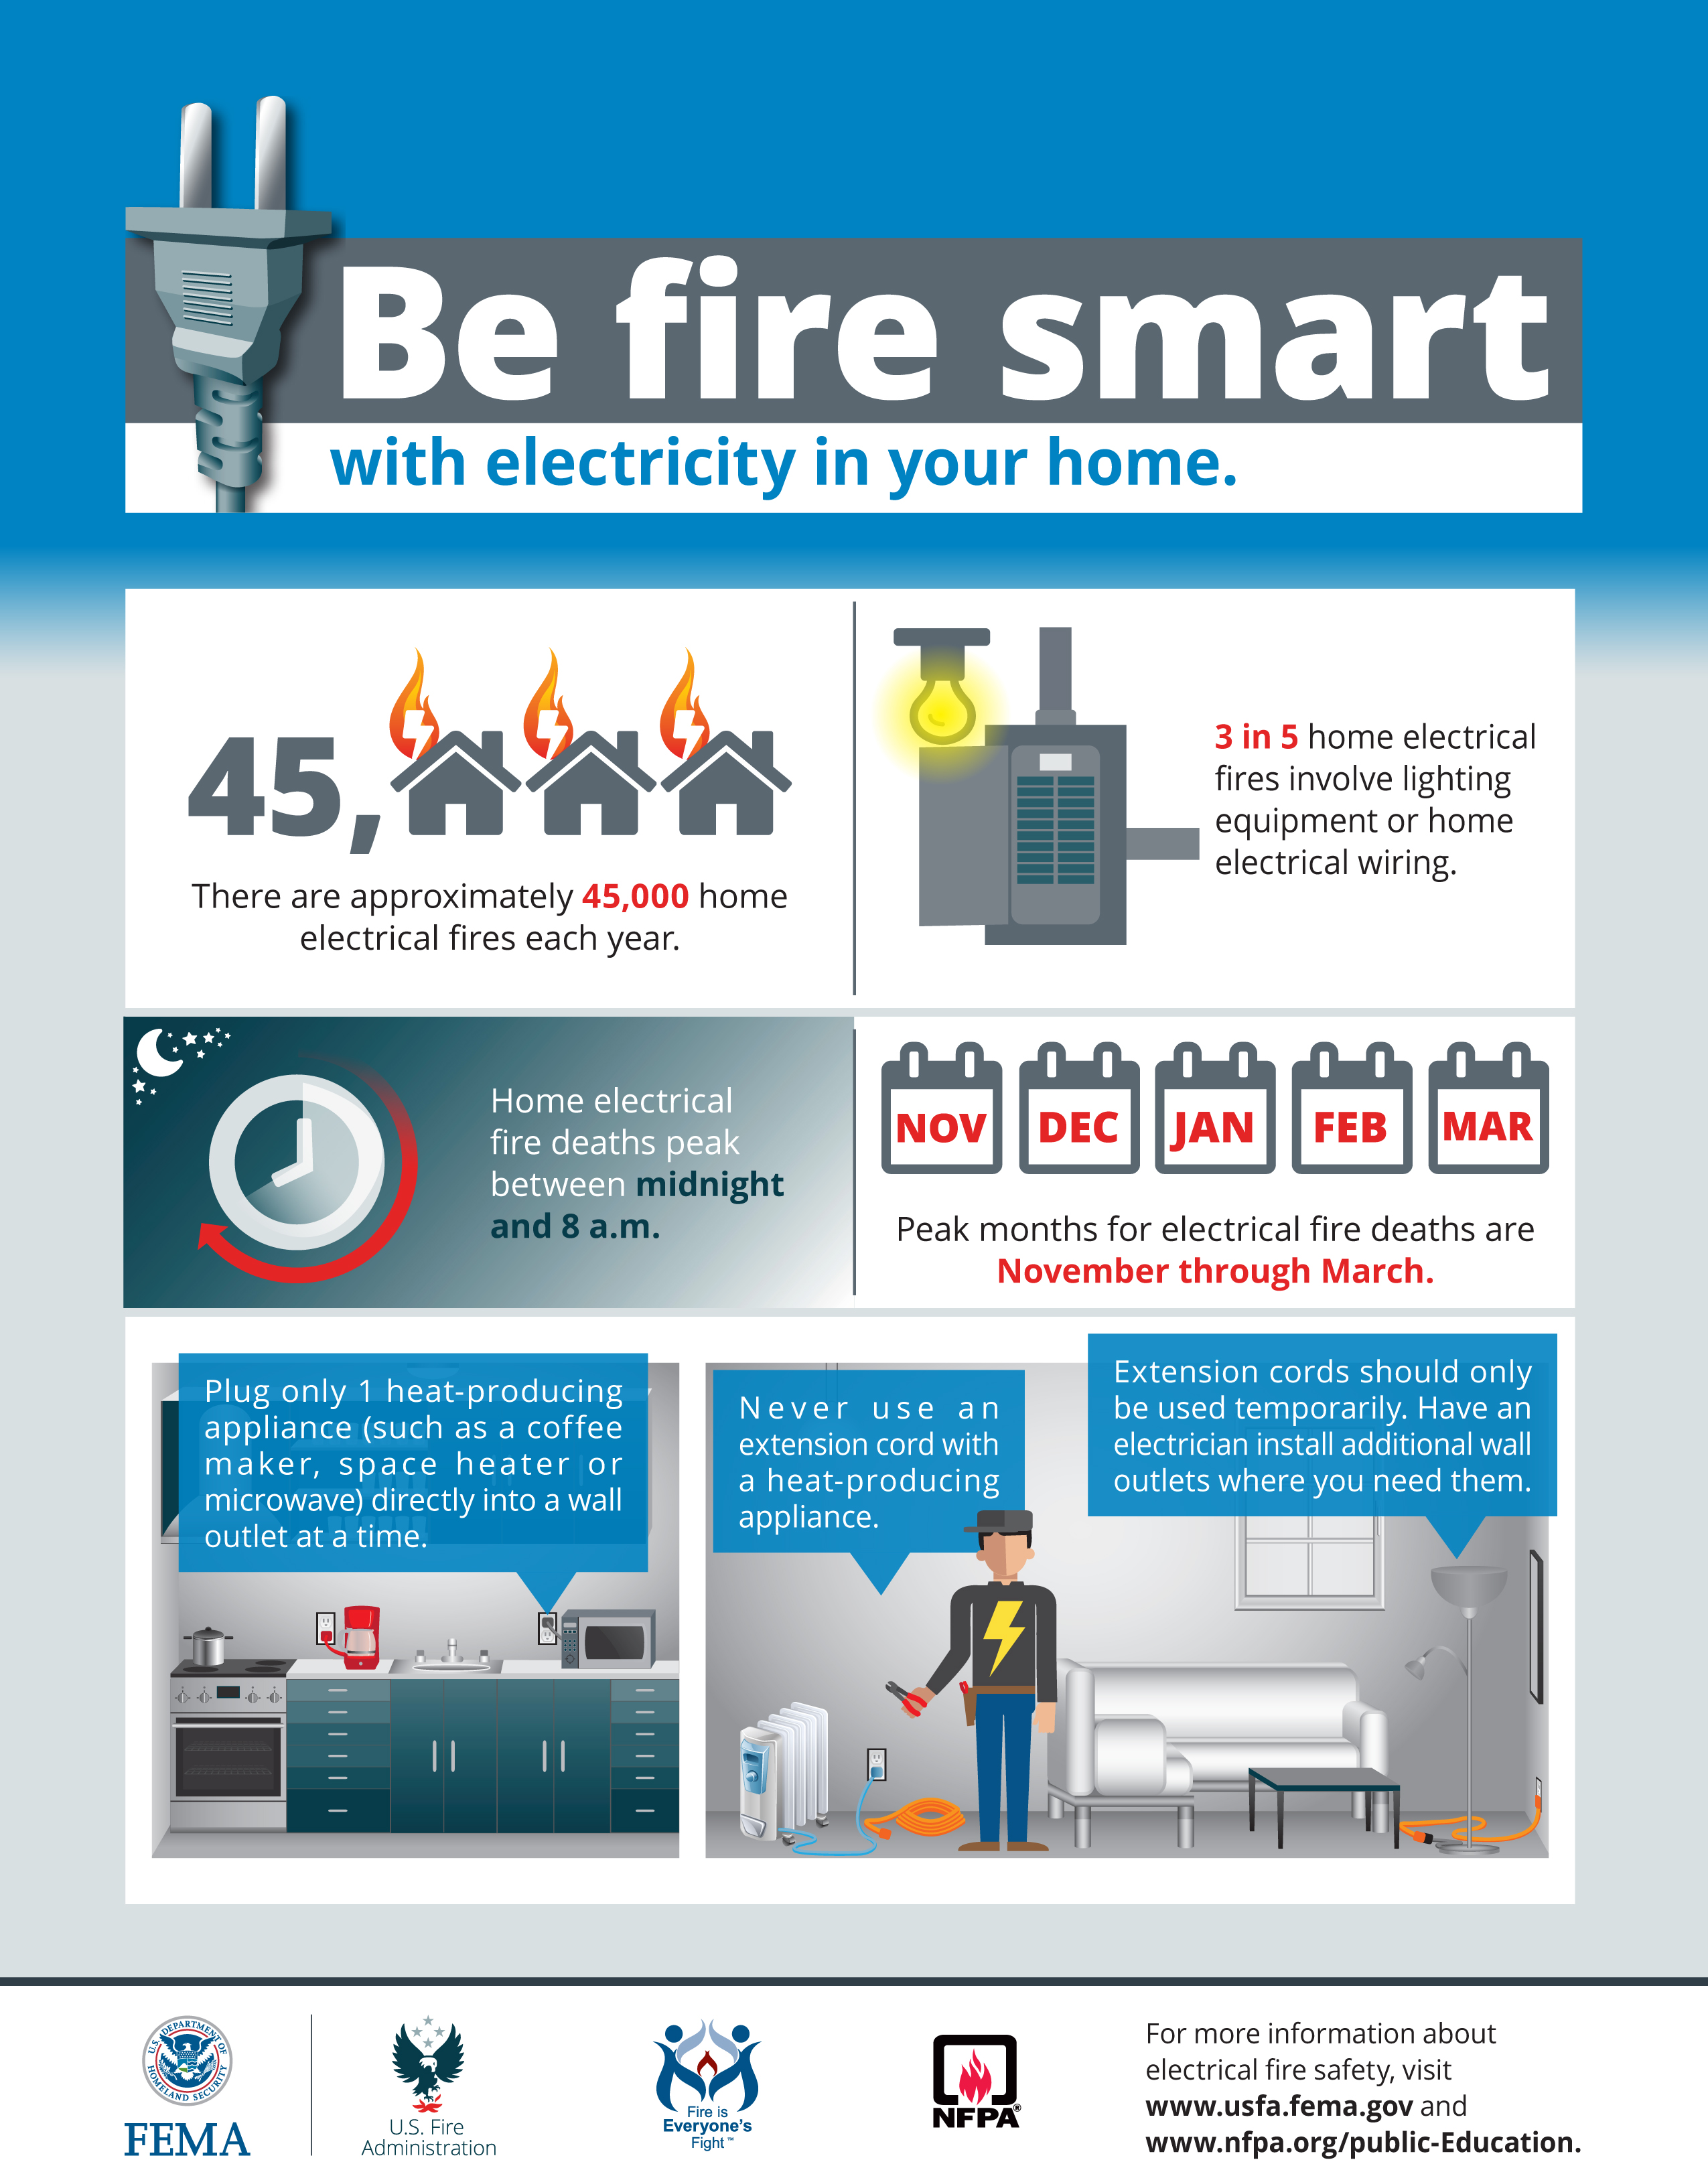 Nfpa Put A Freeze On Winter Fires House Electrical Wiring Questions Be Fire Smart With Electricity In Your Home